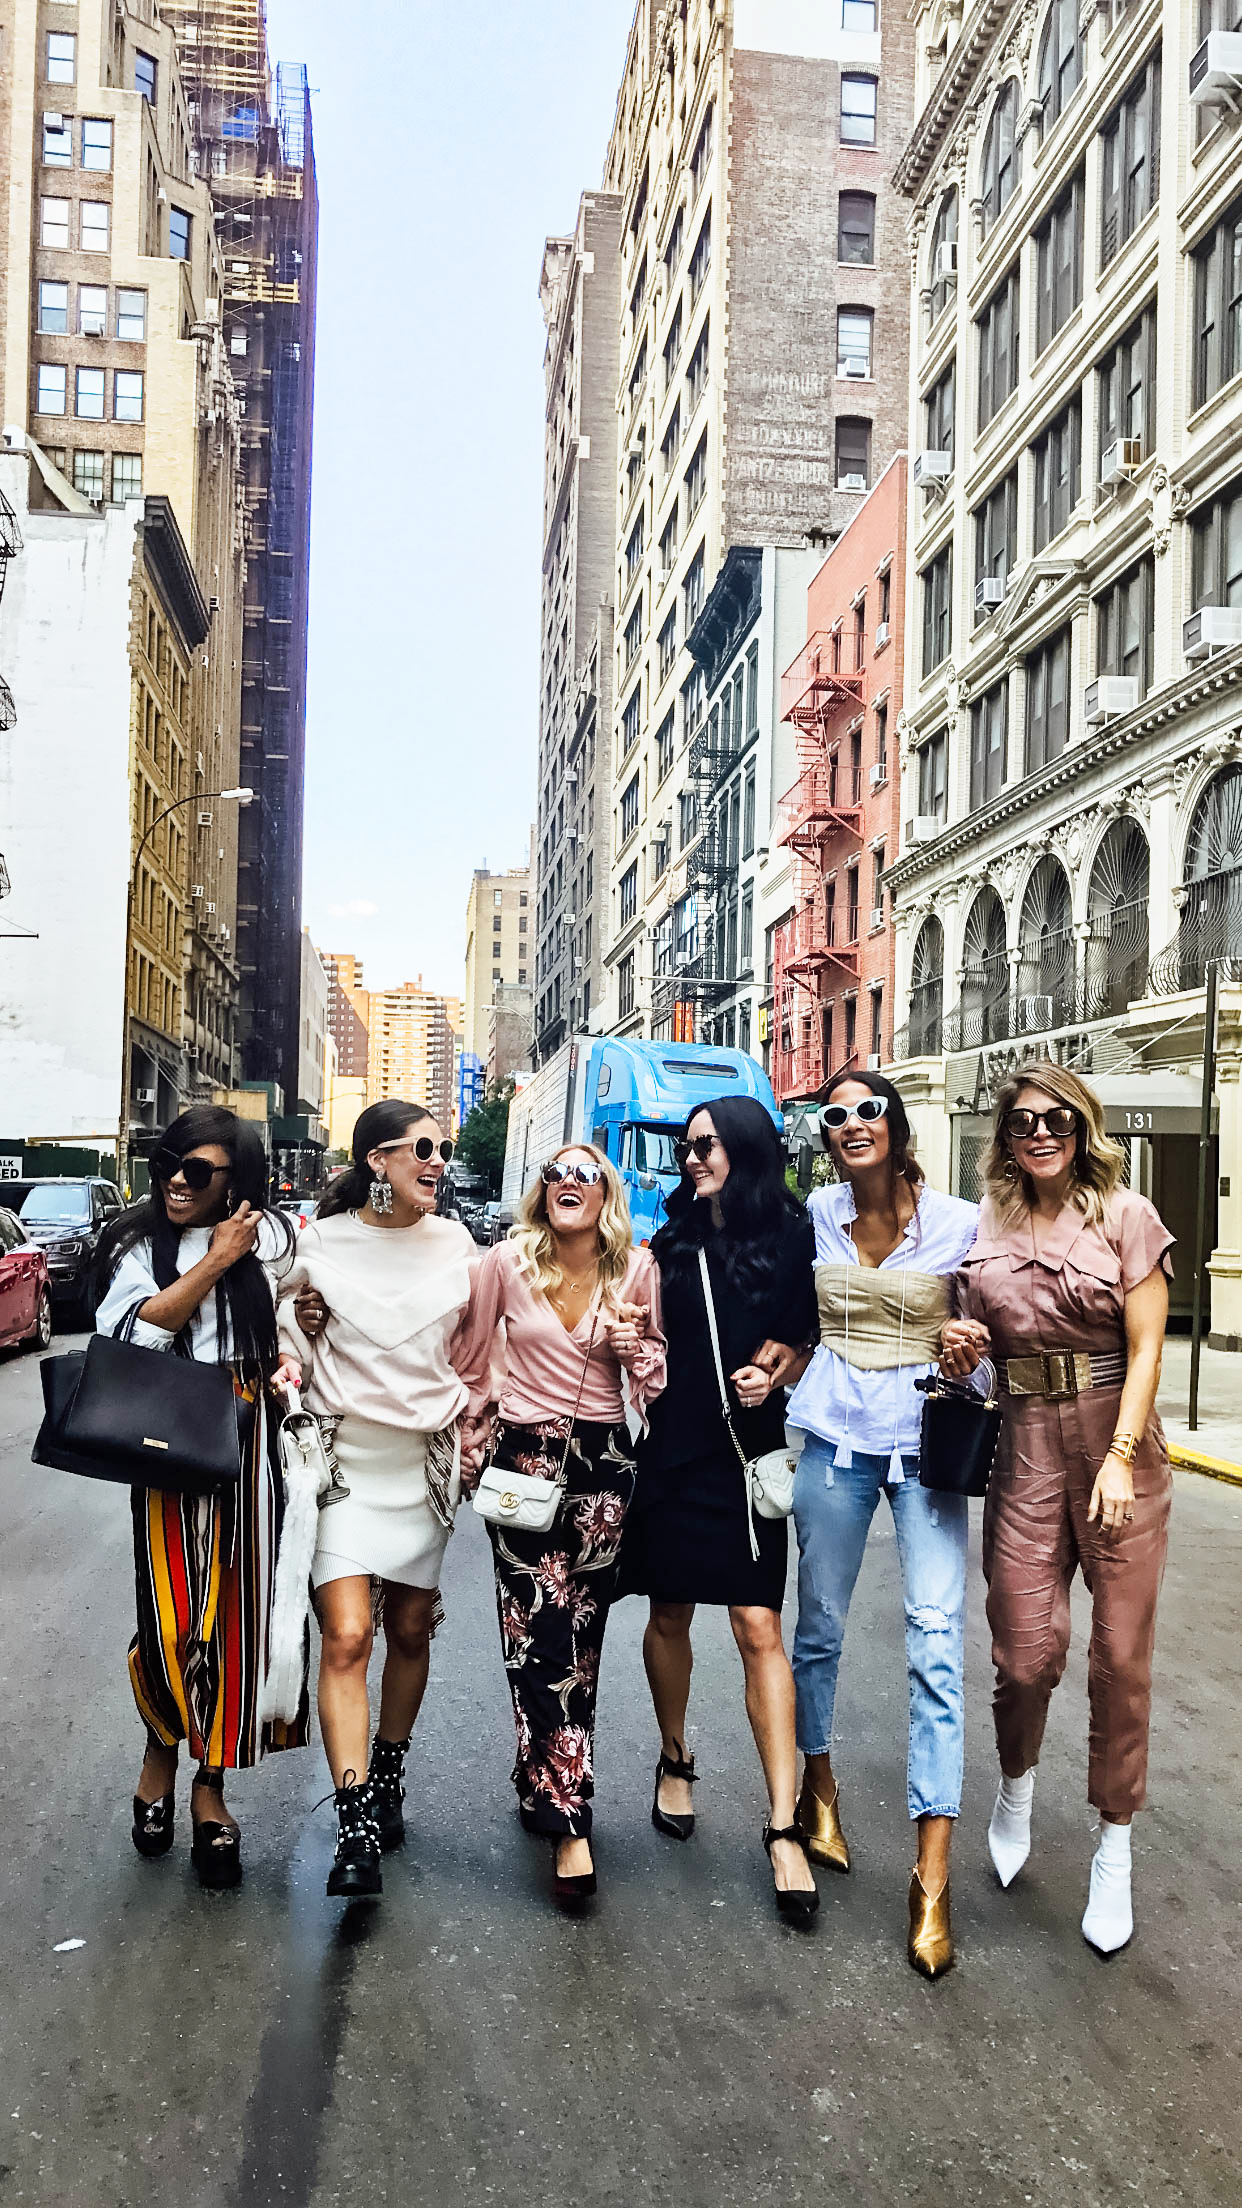 I'm on The Dandy Liar sharing my Day 3 recap from New York Fashion Week 2017, including where I stayed, my outfits, show schedules and parties!